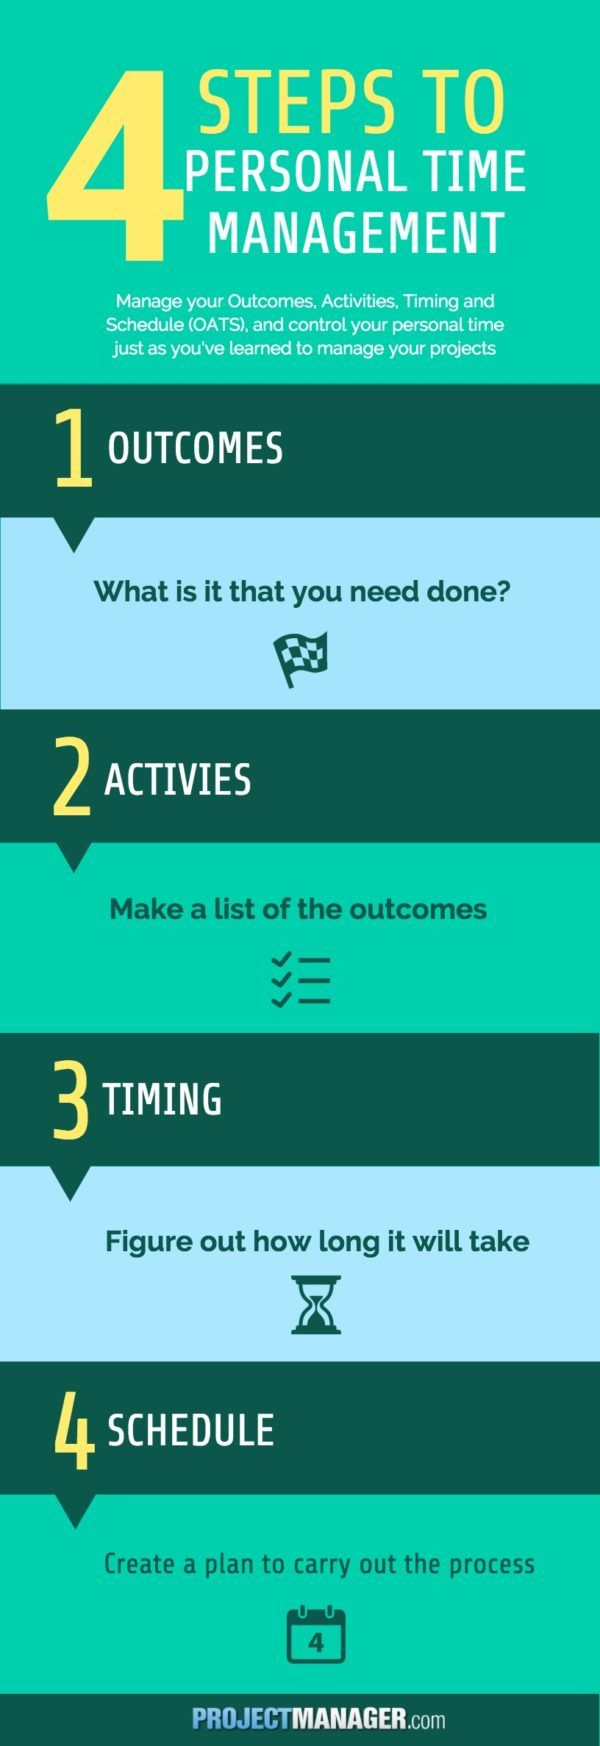 How To Manage Your Personal Time  A Process For Project Managers, Based On  Sound